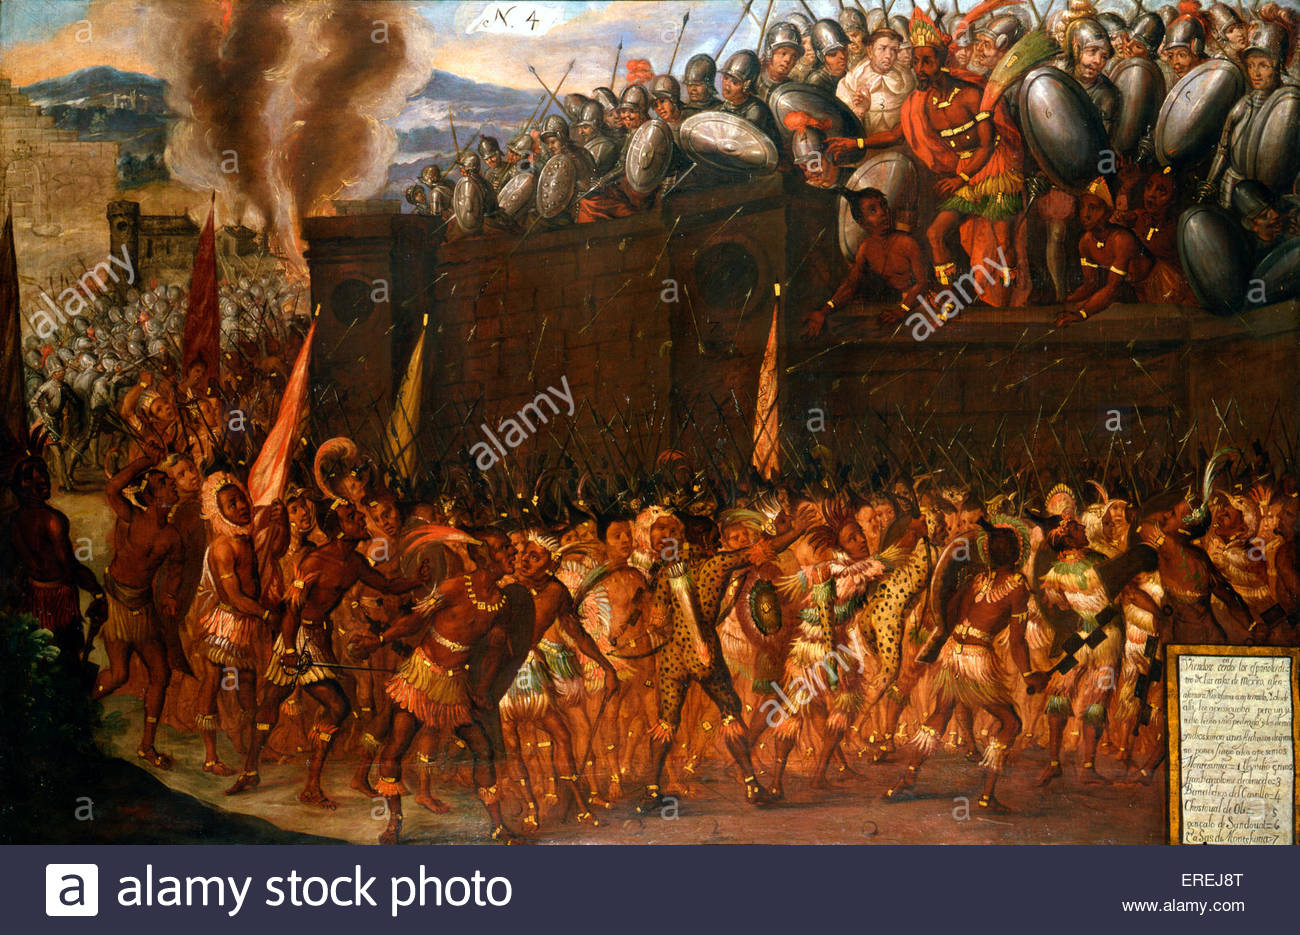 Emperor Moctezuma attacked by rebels - the fall of the Aztec Empire. After being held captive for more than six - Stock Image